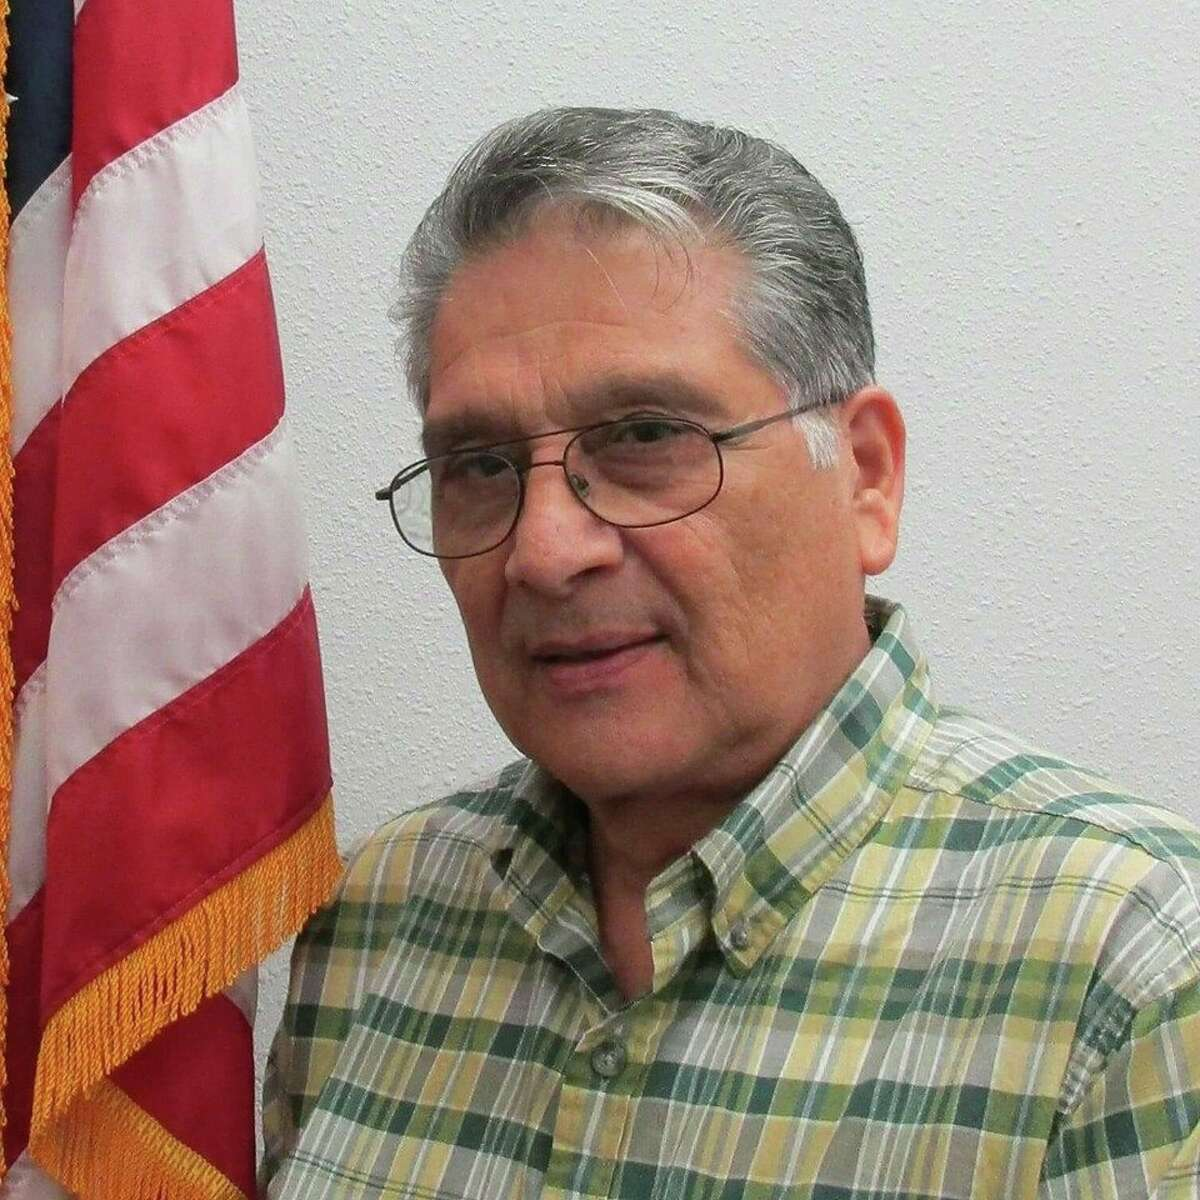 Jesse Alberto Ybanez, 70, is the Democratic candidate for the November 2016 general election race for Texas House District 135. He is challenging State Rep. Gary Elkins, the Republican incumbent. District 135 includes parts of northwest Harris County including the hamlet of Jersey Village and subdivisions near the intersection of U.S. 290 and beltways 6 and 8.